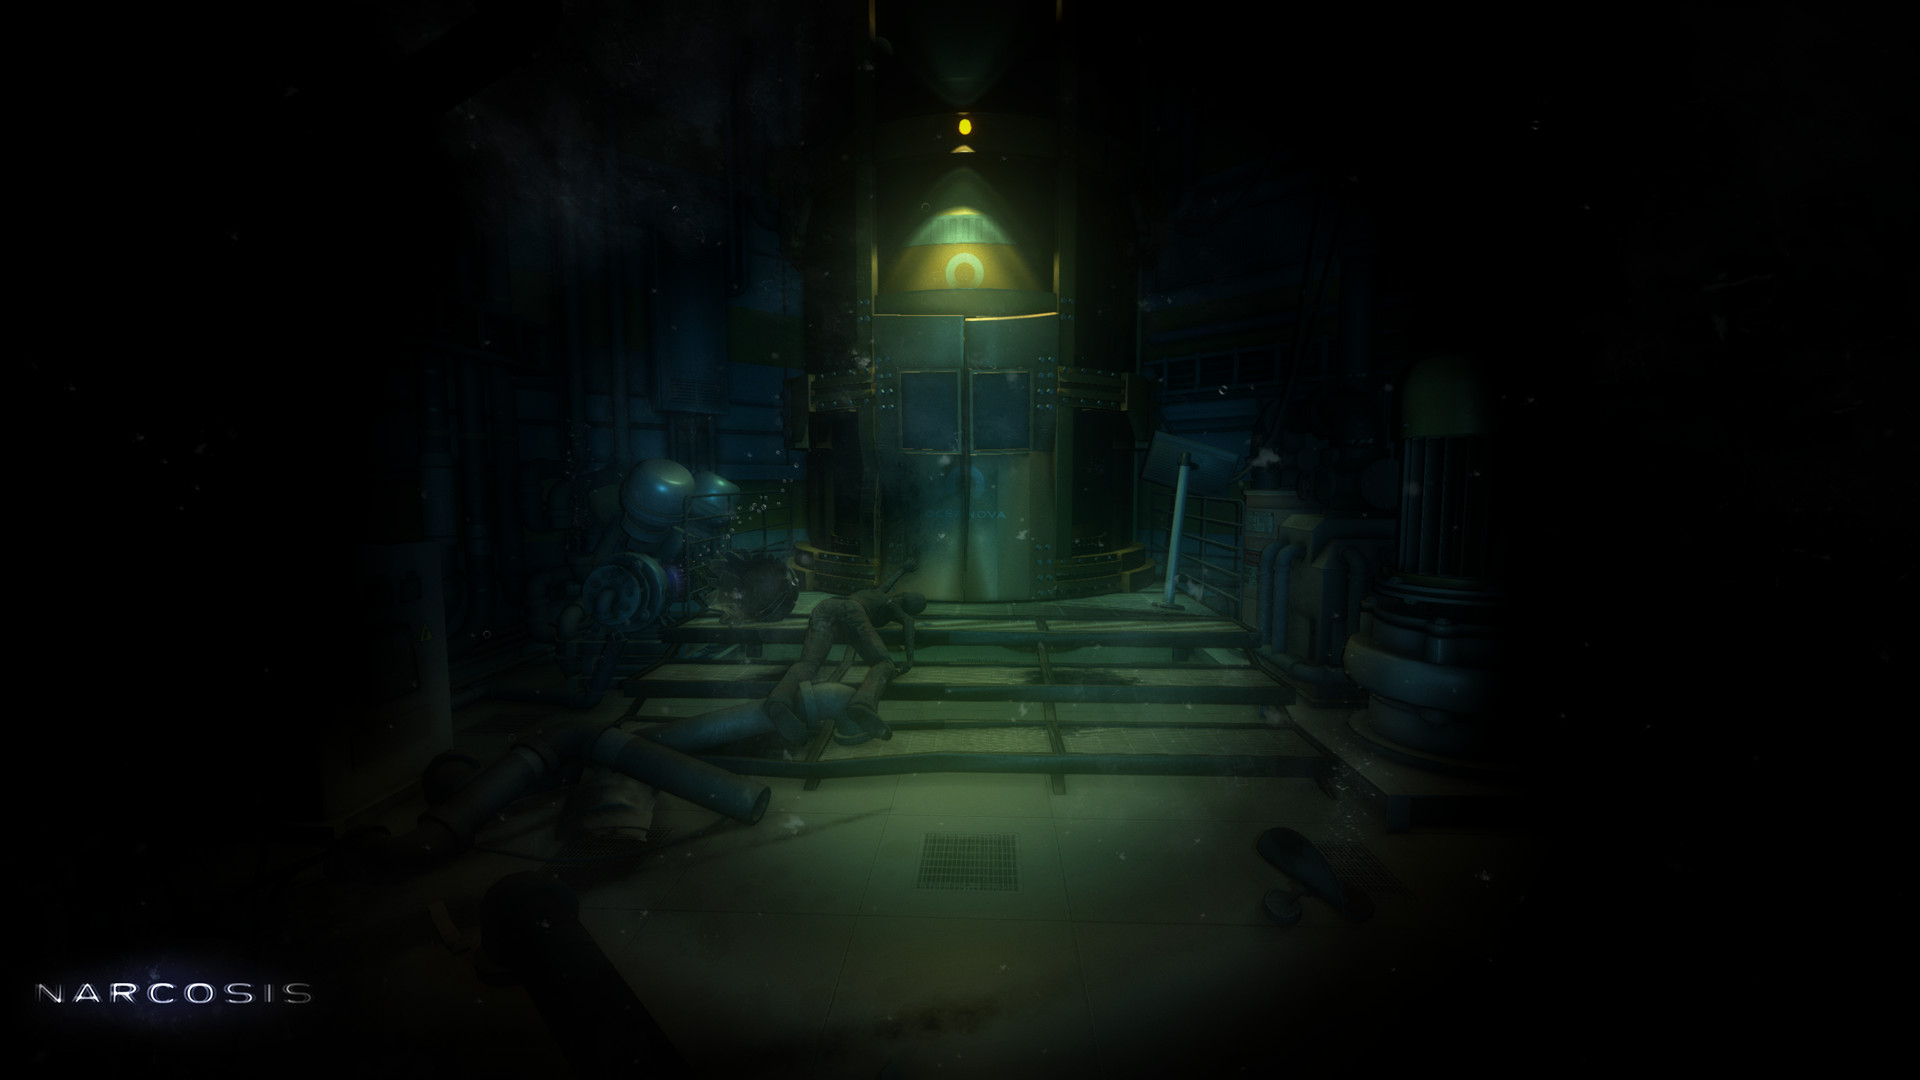 Narcosis screenshot